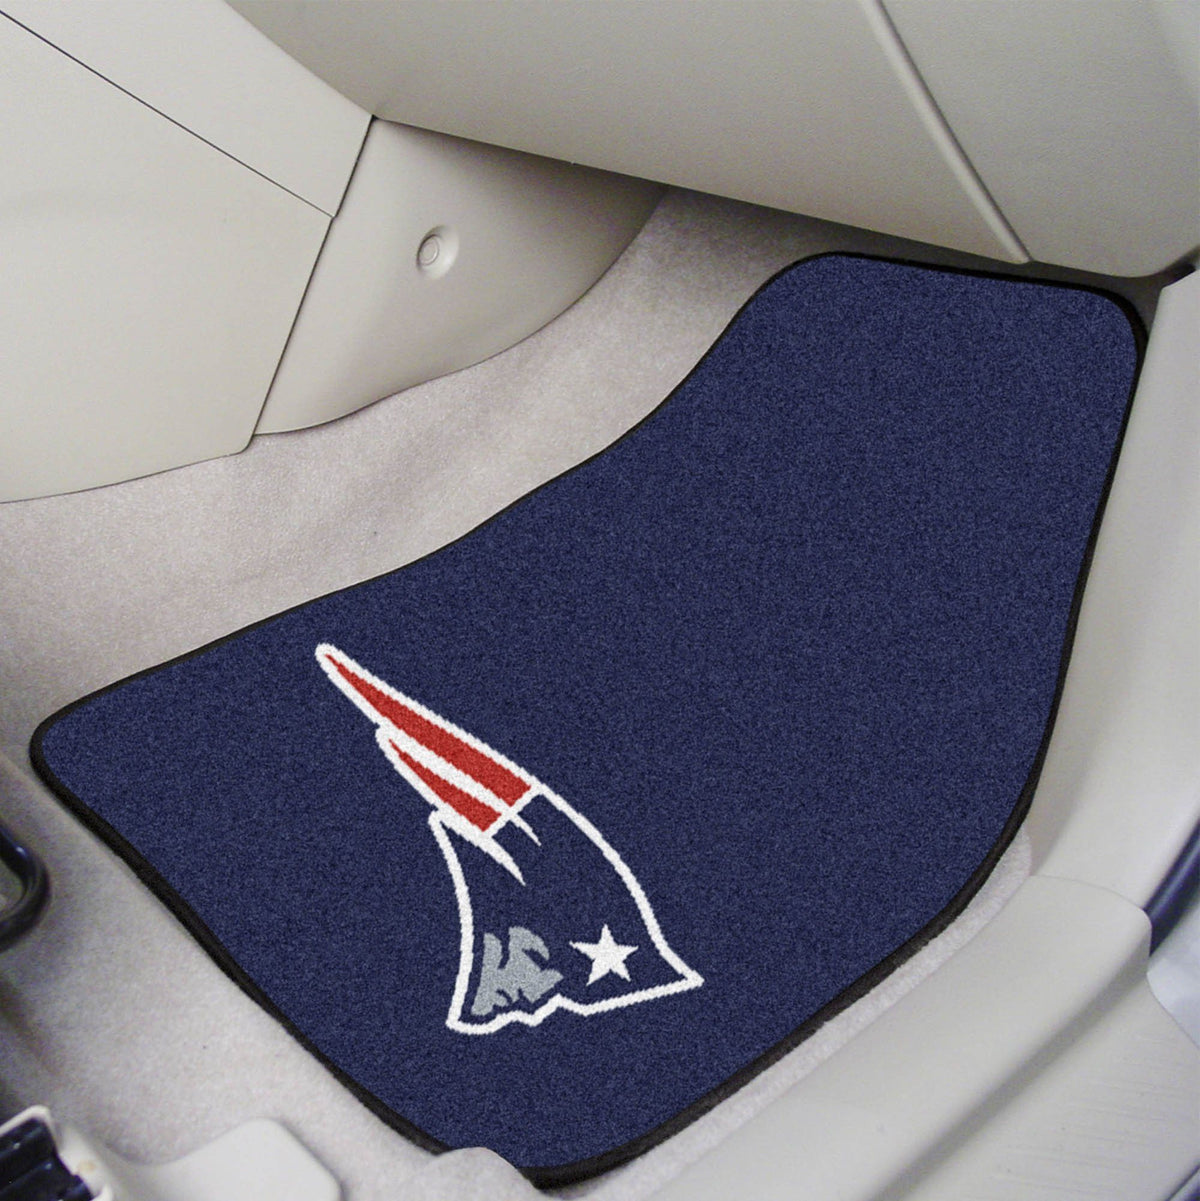 "NFL - 2-pc Carpet Car Mat Set, 17"" x 27"" NFL Mats, Front Car Mats, 2-pc Carpet Car Mat Set, NFL, Auto Fan Mats New England Patriots"